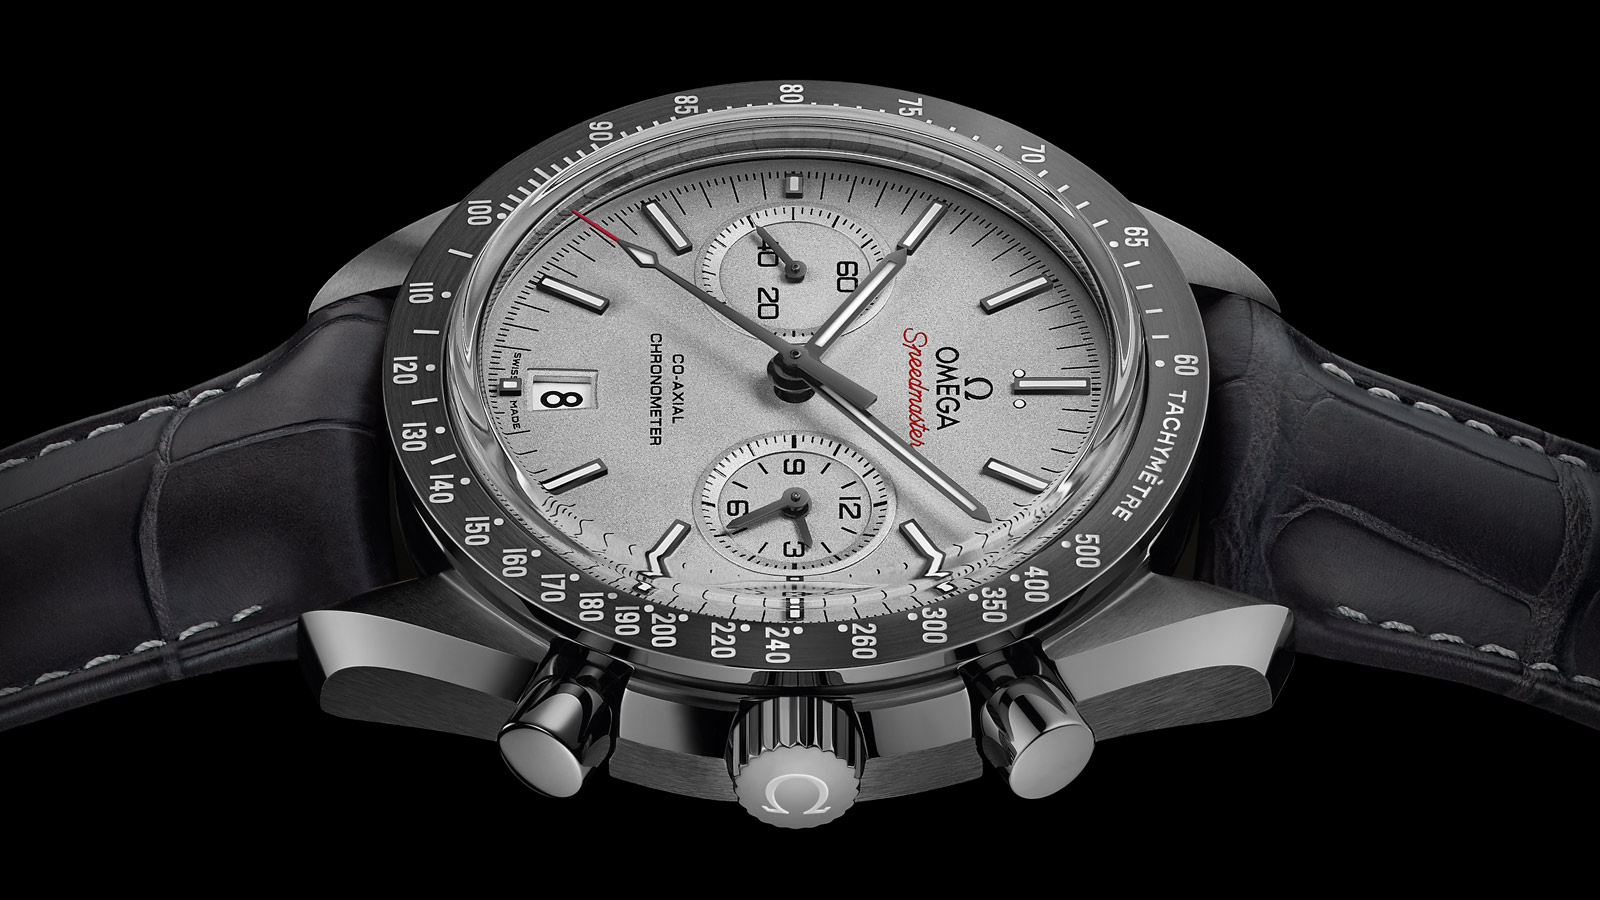 Speedmaster ムーンウォッチ Moonwatch Omega Co‑Axial Chronograph 44.25 mm - 311.93.44.51.99.001 - ビュー 4